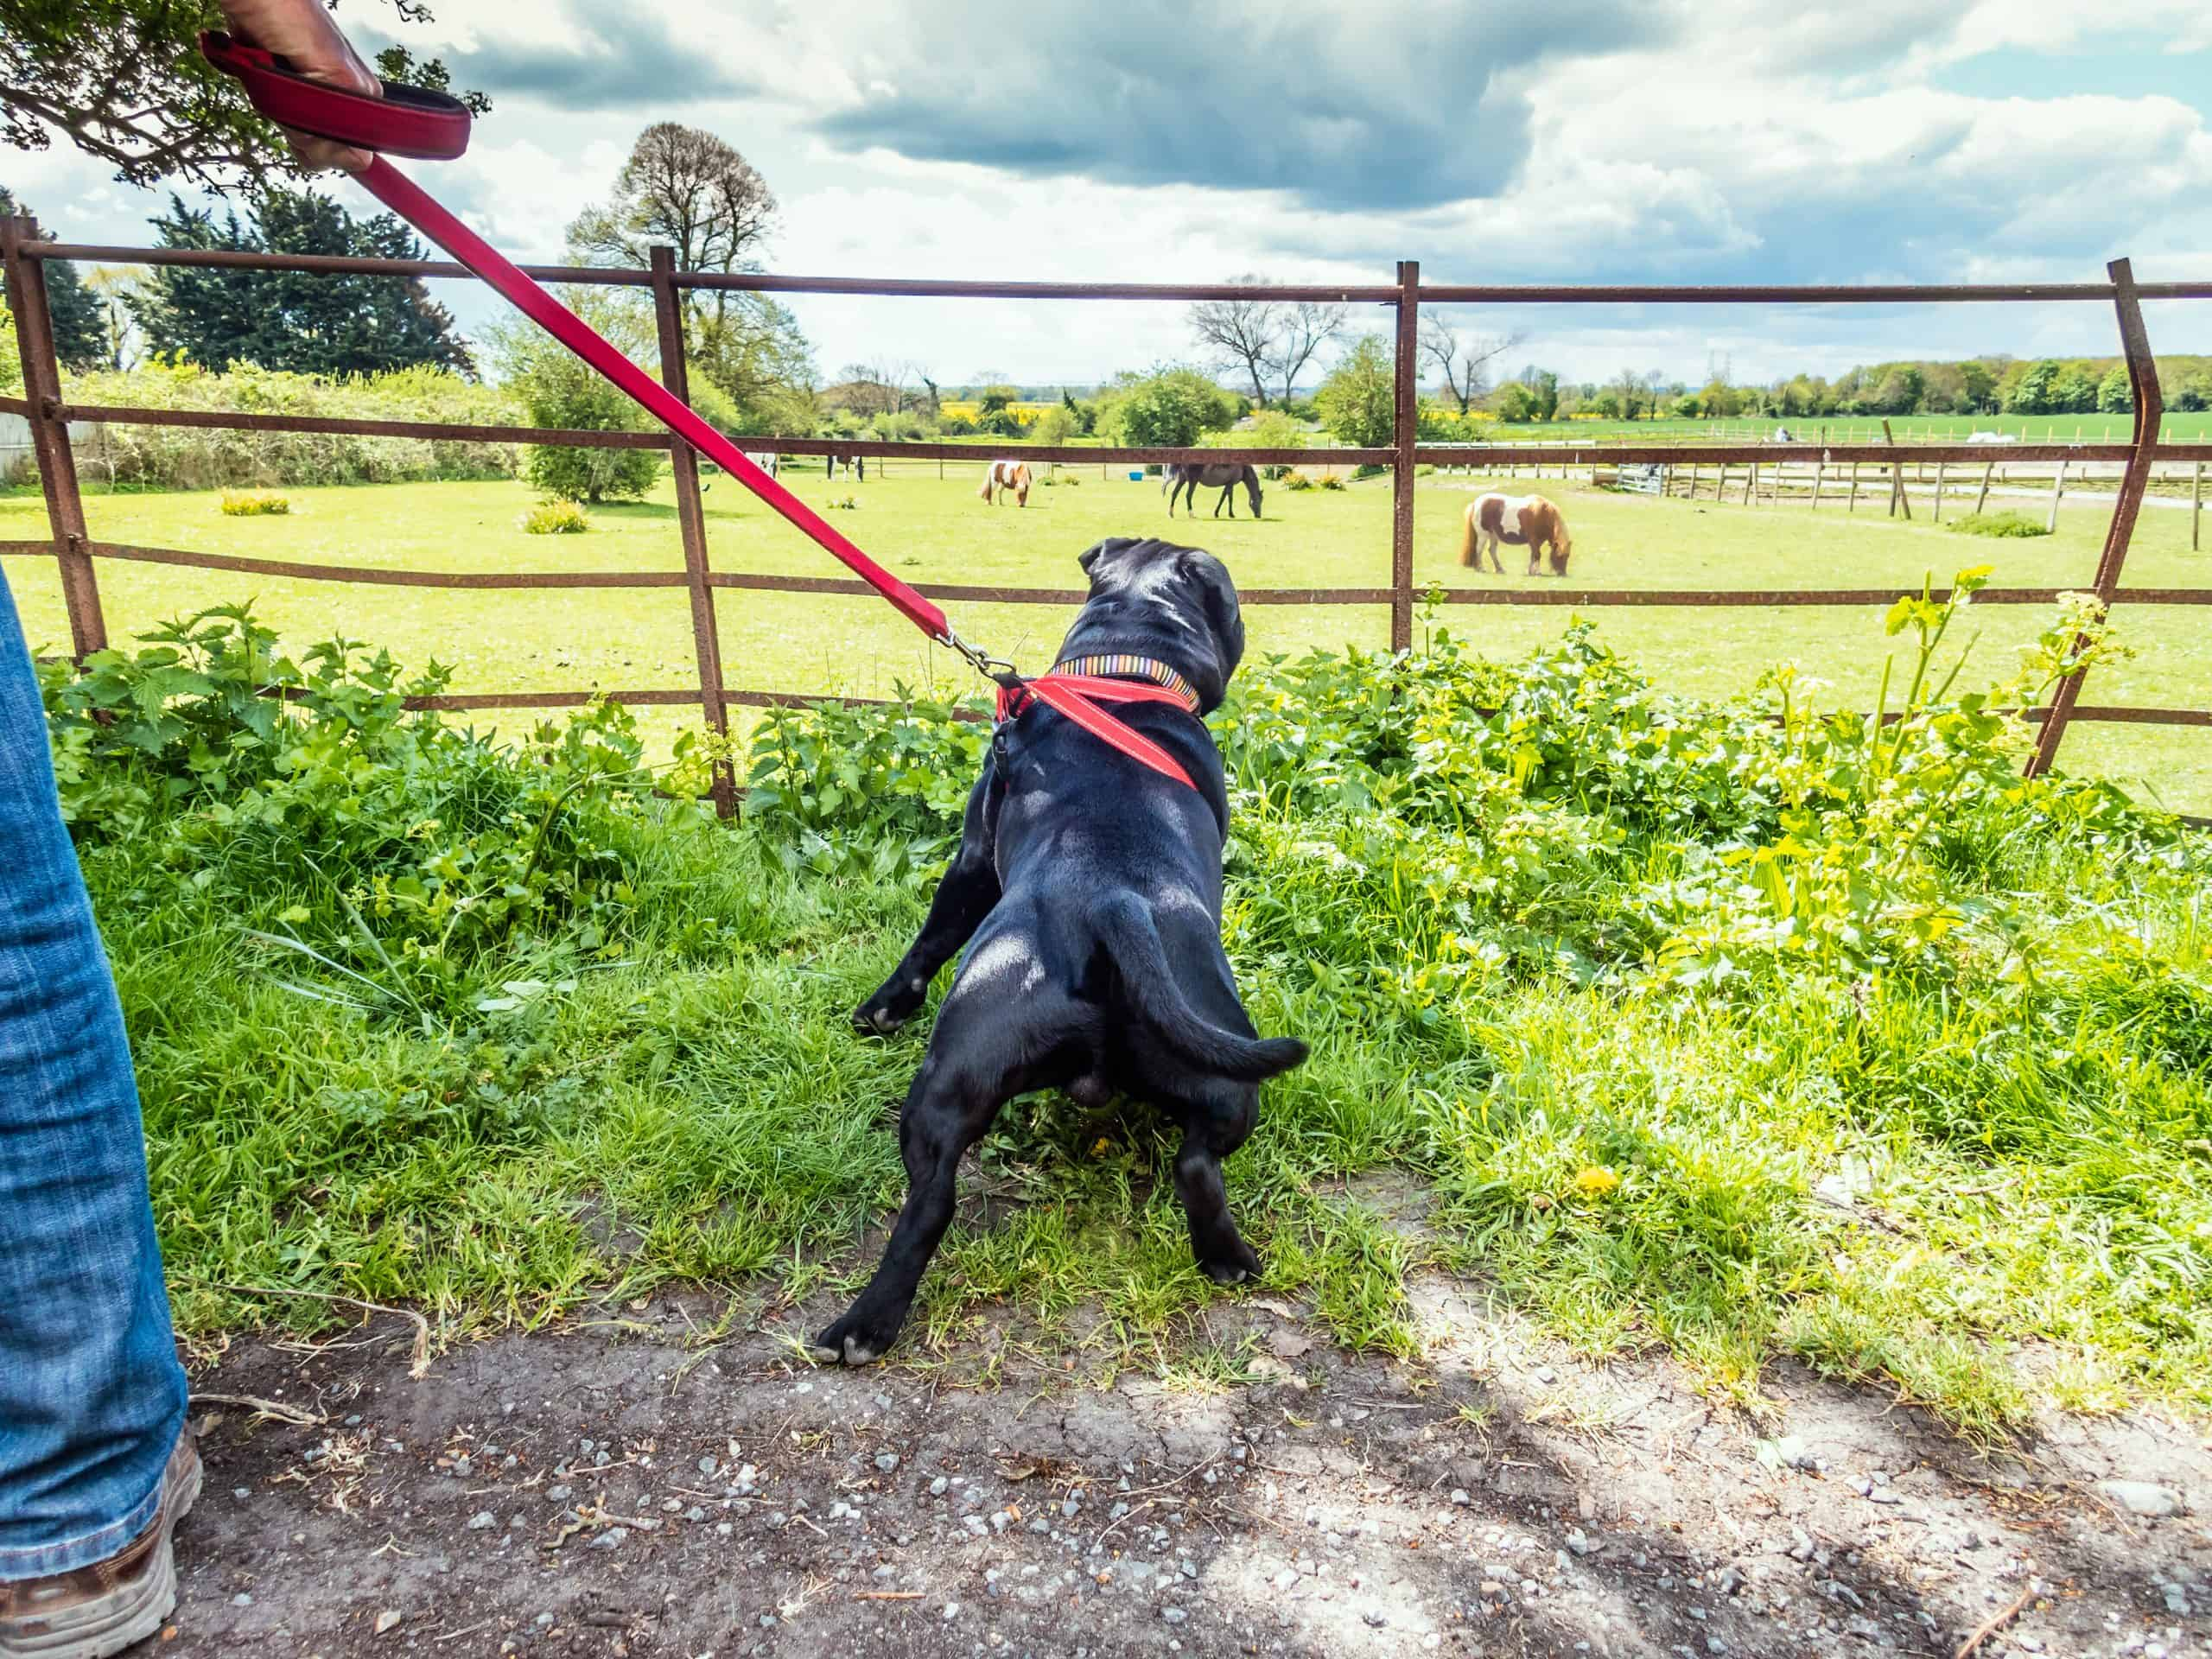 Strong young staffordshire bull terrier dog pulling on a red harness and lead looking in a field through a rusy metal fence . The field has horses and a shetland pony in it.